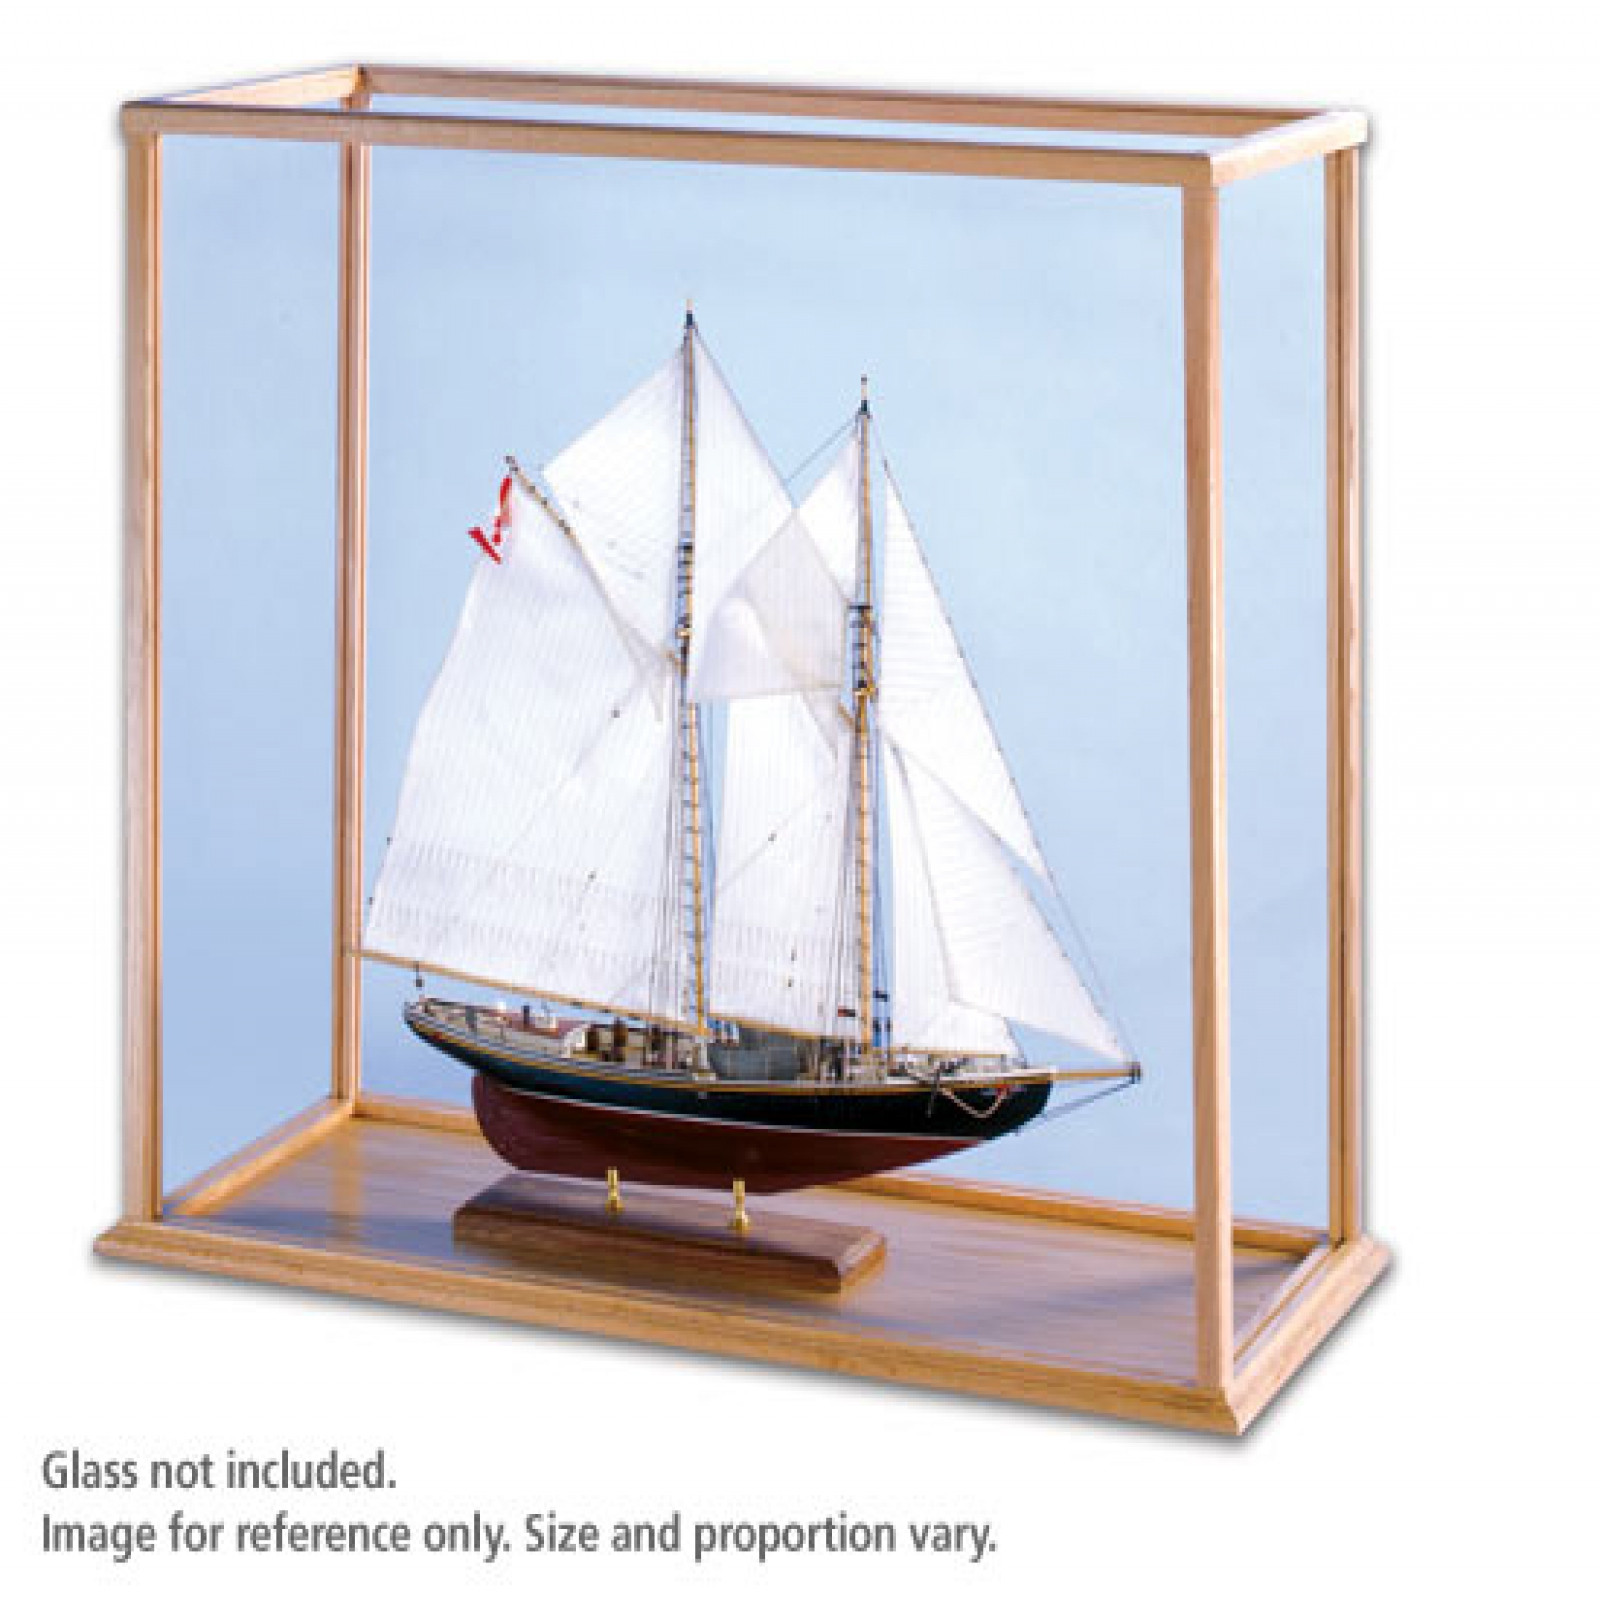 OAK SHIP MODEL CASE   L36 X W13 X H32   KIT